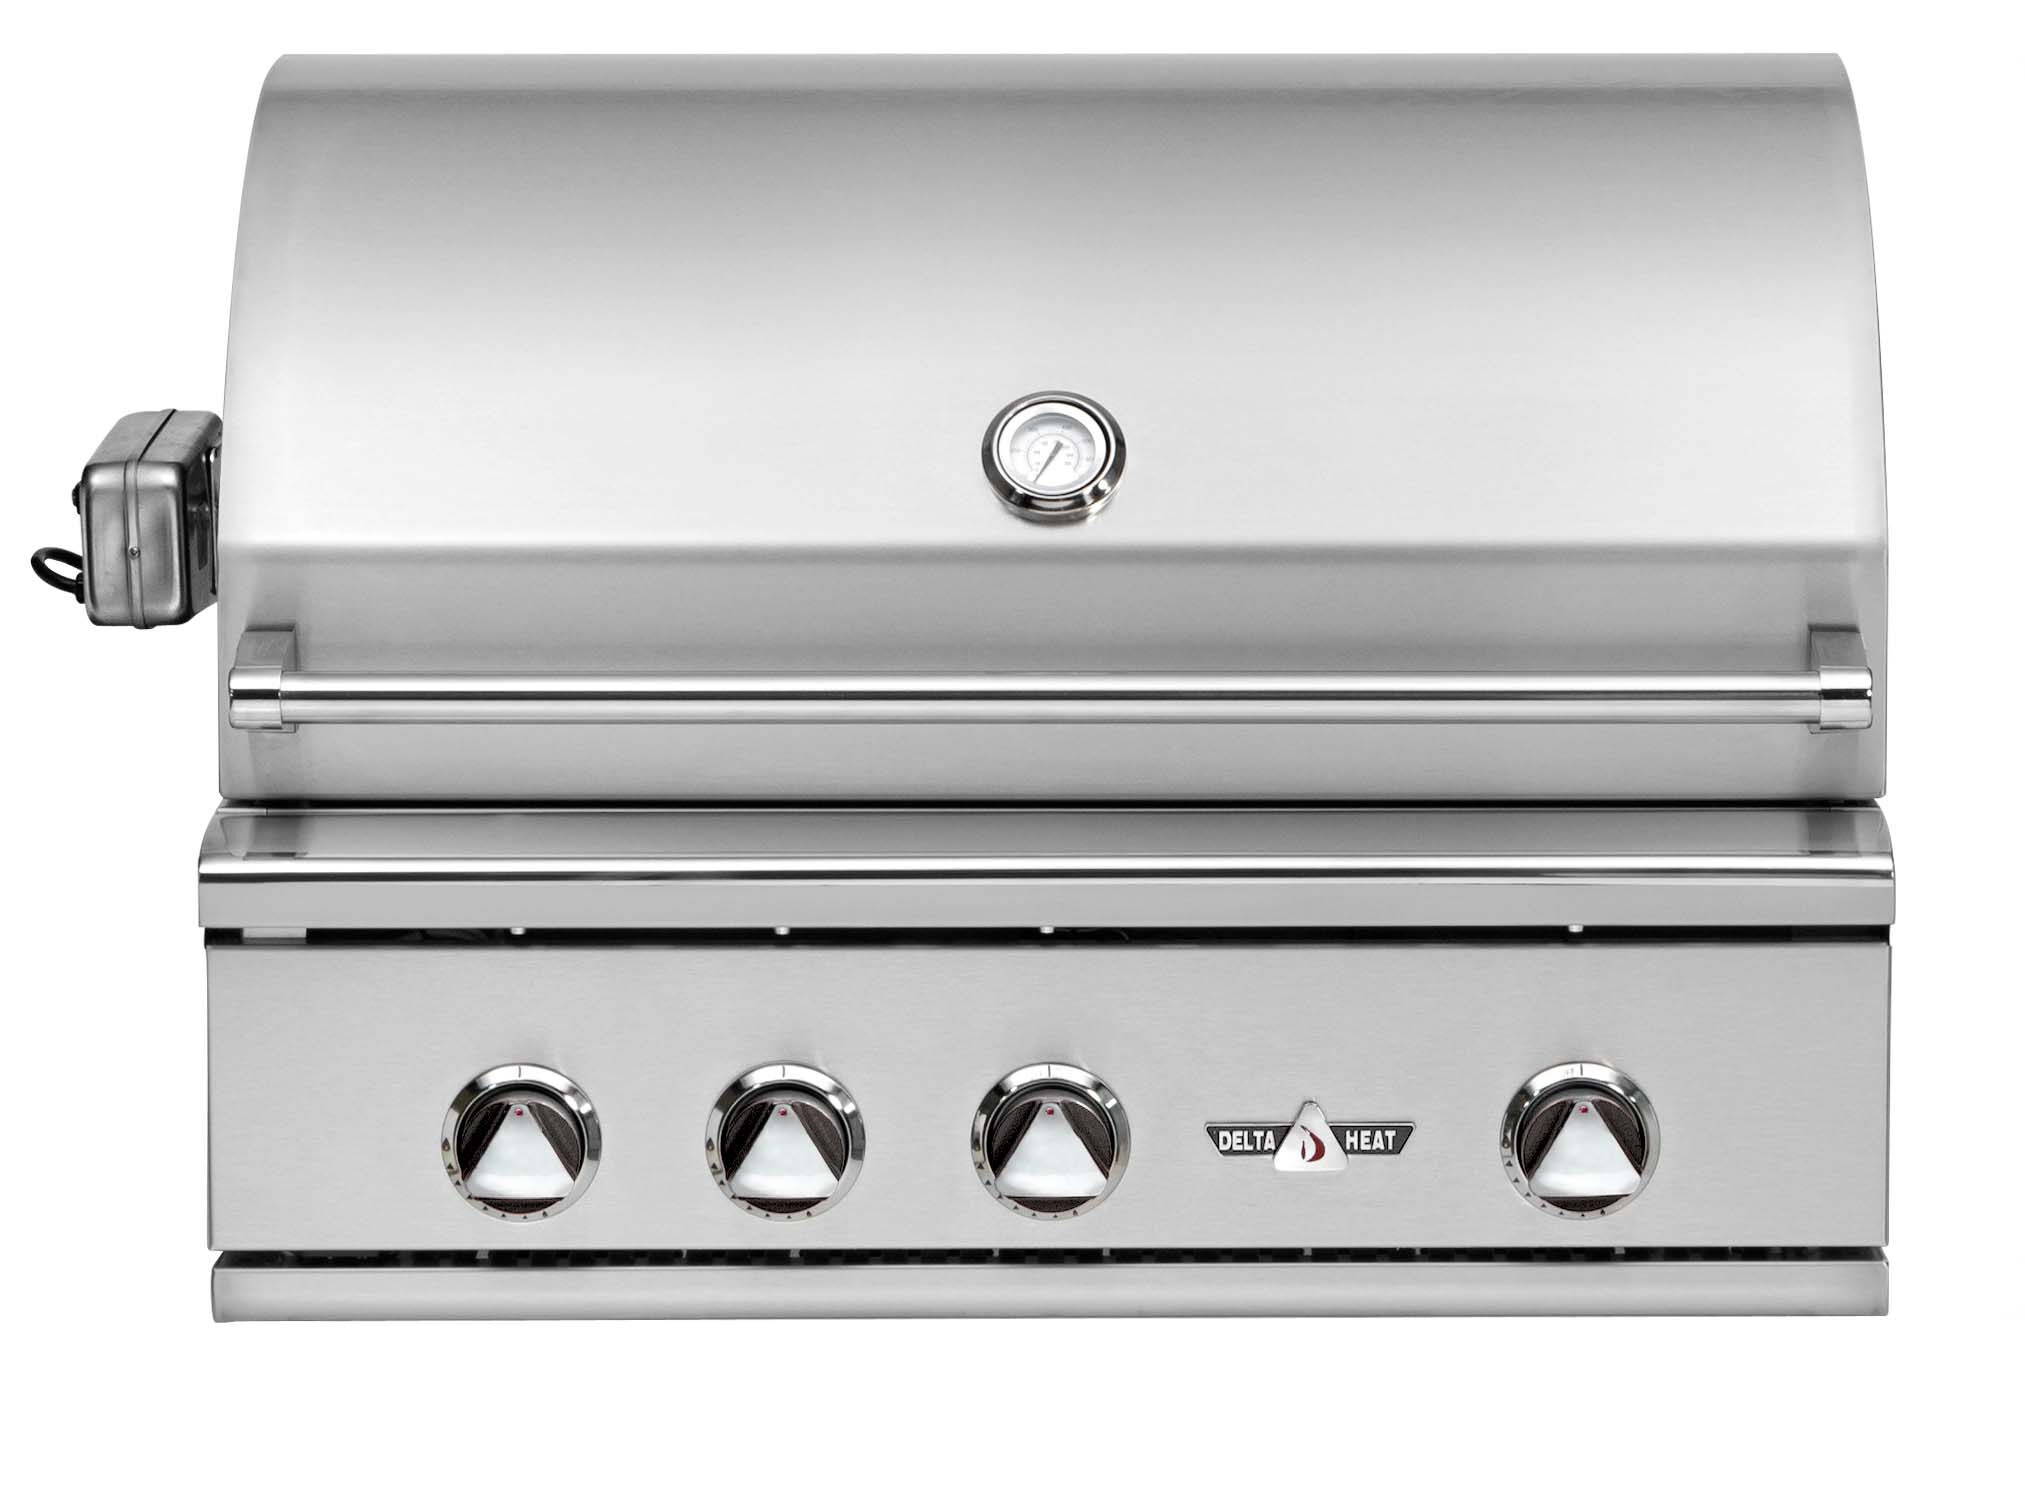 The Best Outdoor Kitchen Grill For Your Budget The Bbq Depot